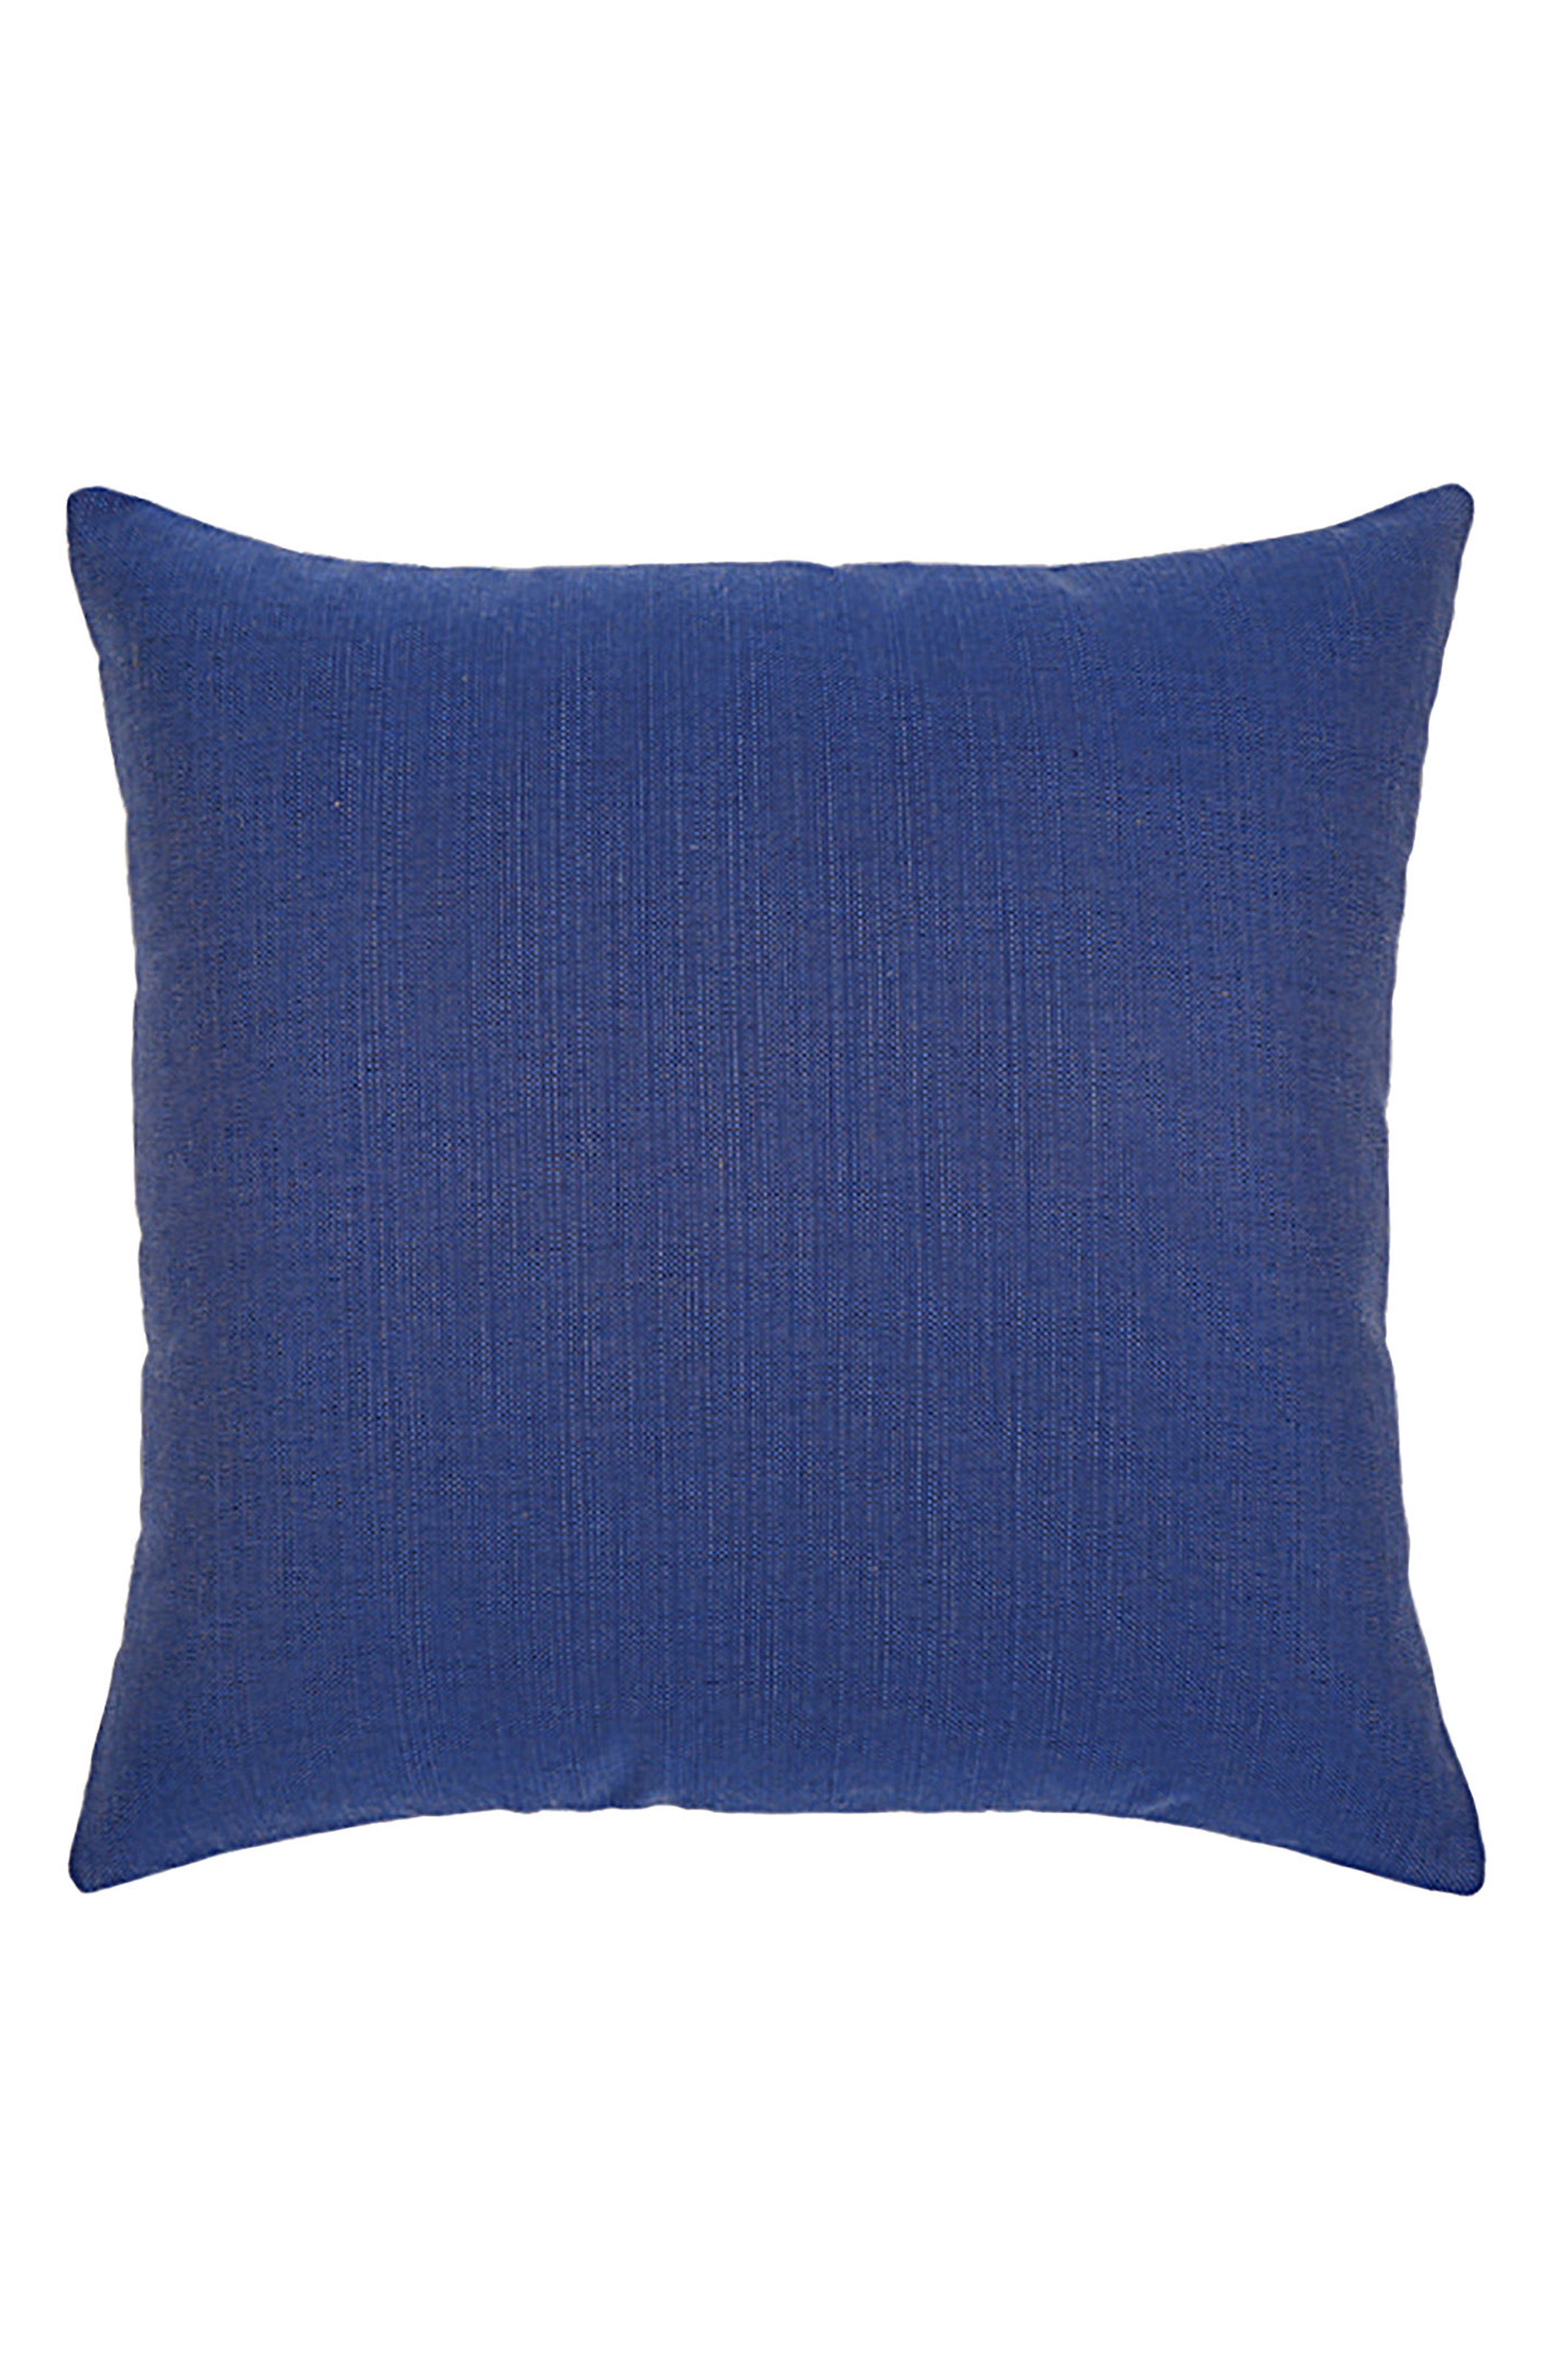 Midnight Tile Indoor/Outdoor Accent Pillow,                             Alternate thumbnail 2, color,                             BLUE